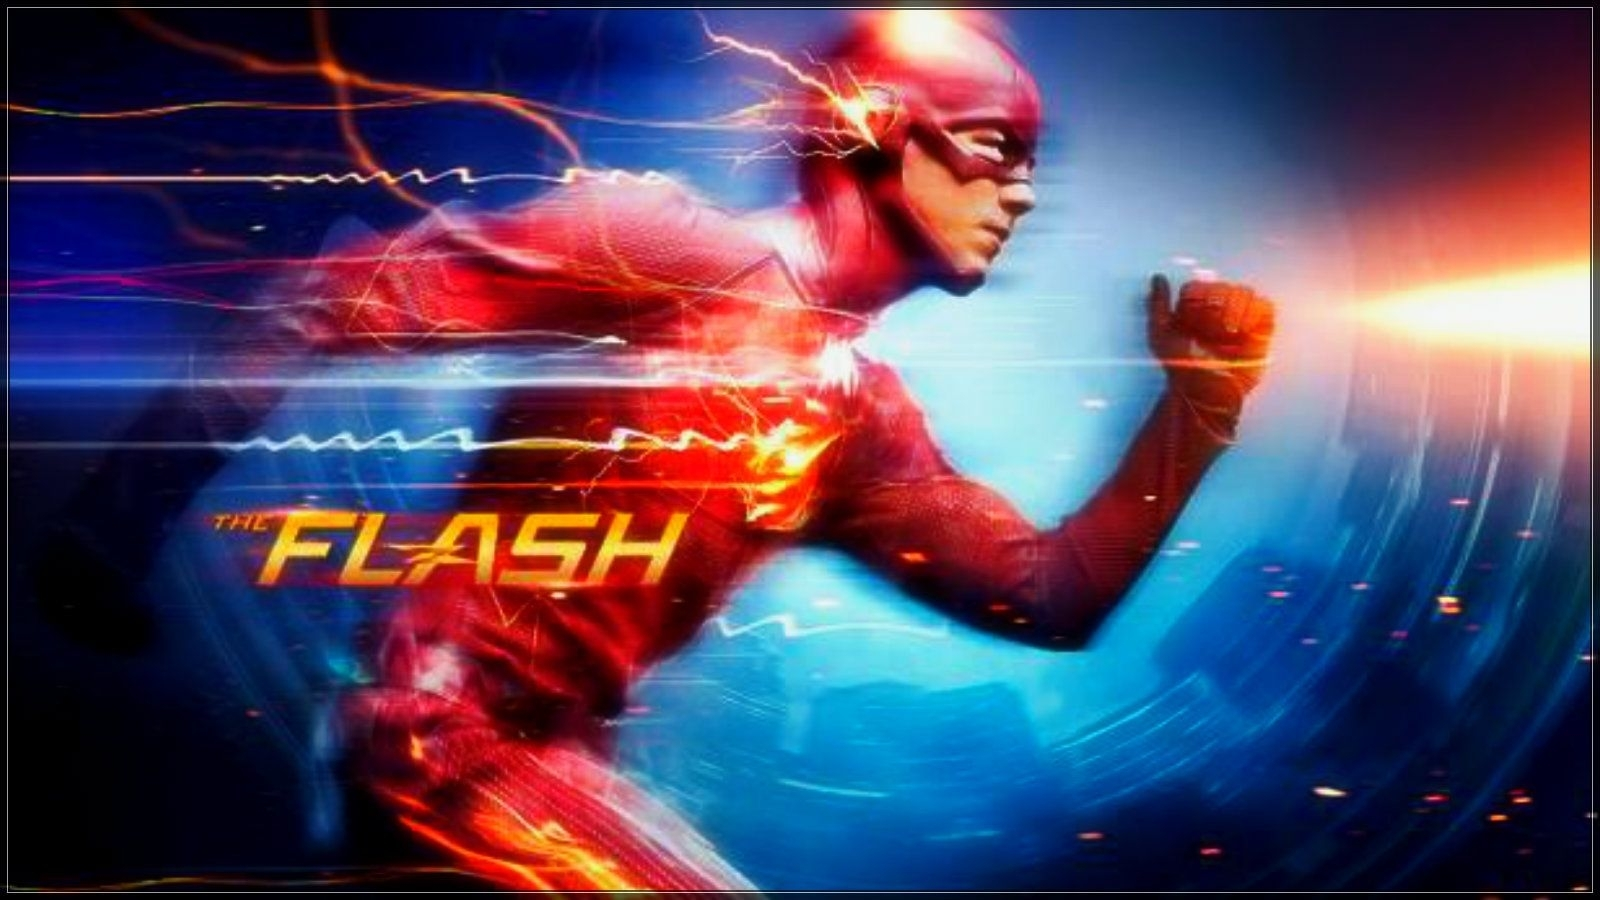 the flash hd wallpapers backgrounds wallpaper | hd wallpapers